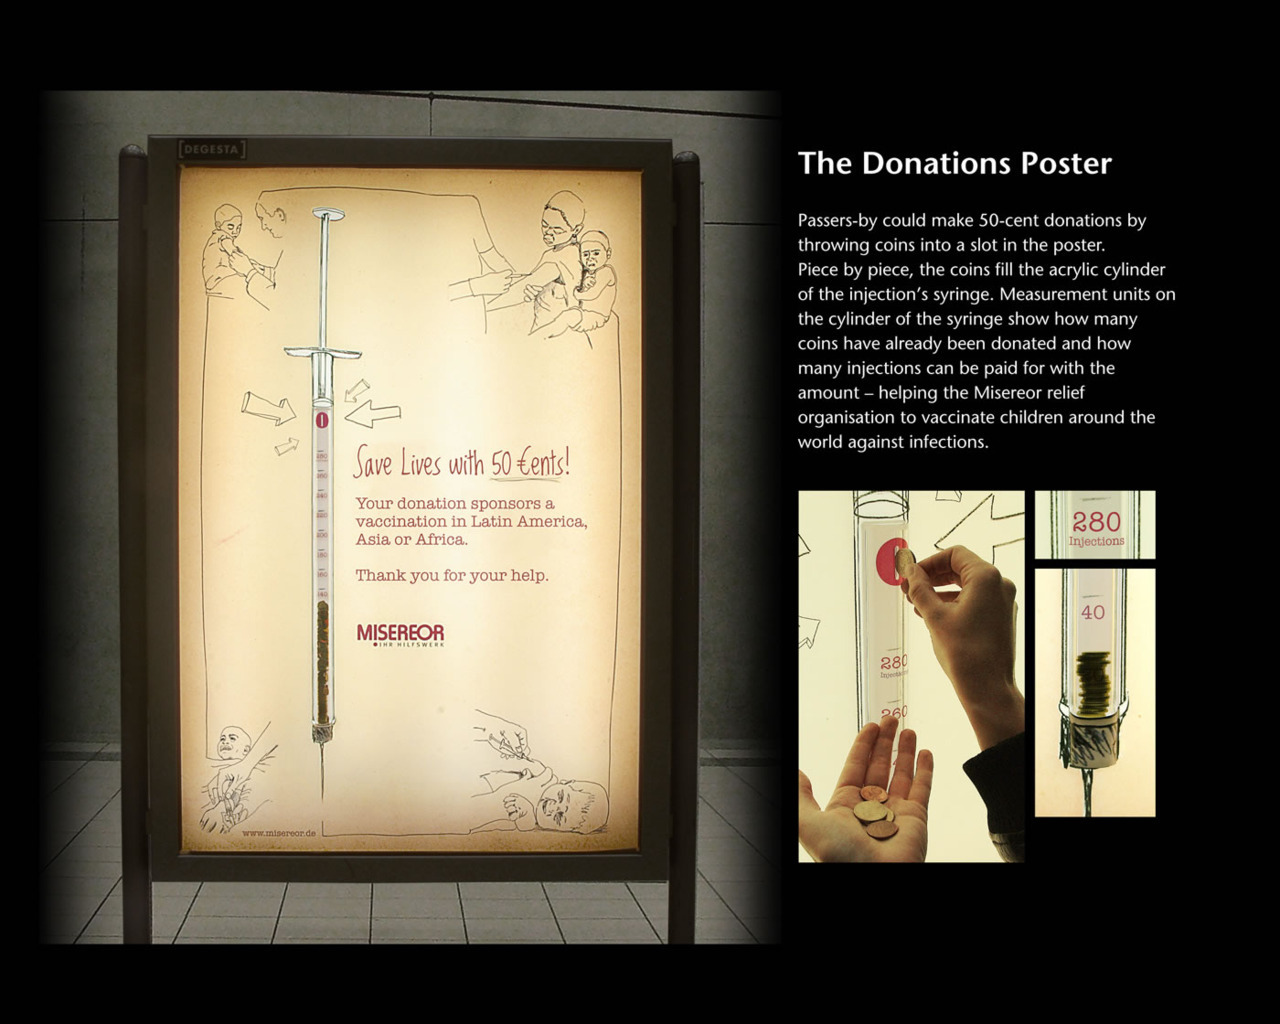 adwriter:  The Donations Poster Passers-by could make 50-cent donations by throwing coins into a slot in  the poster. Piece by piece, the coins fill the acrylic cylinder of the  injection's syringe. Measurement units on the cylinder of the syringe  show how many coins have already been donated and how many injections  can be paid for with the amount – helping the Misereor relief  organization to vaccinate children around the world against infections.